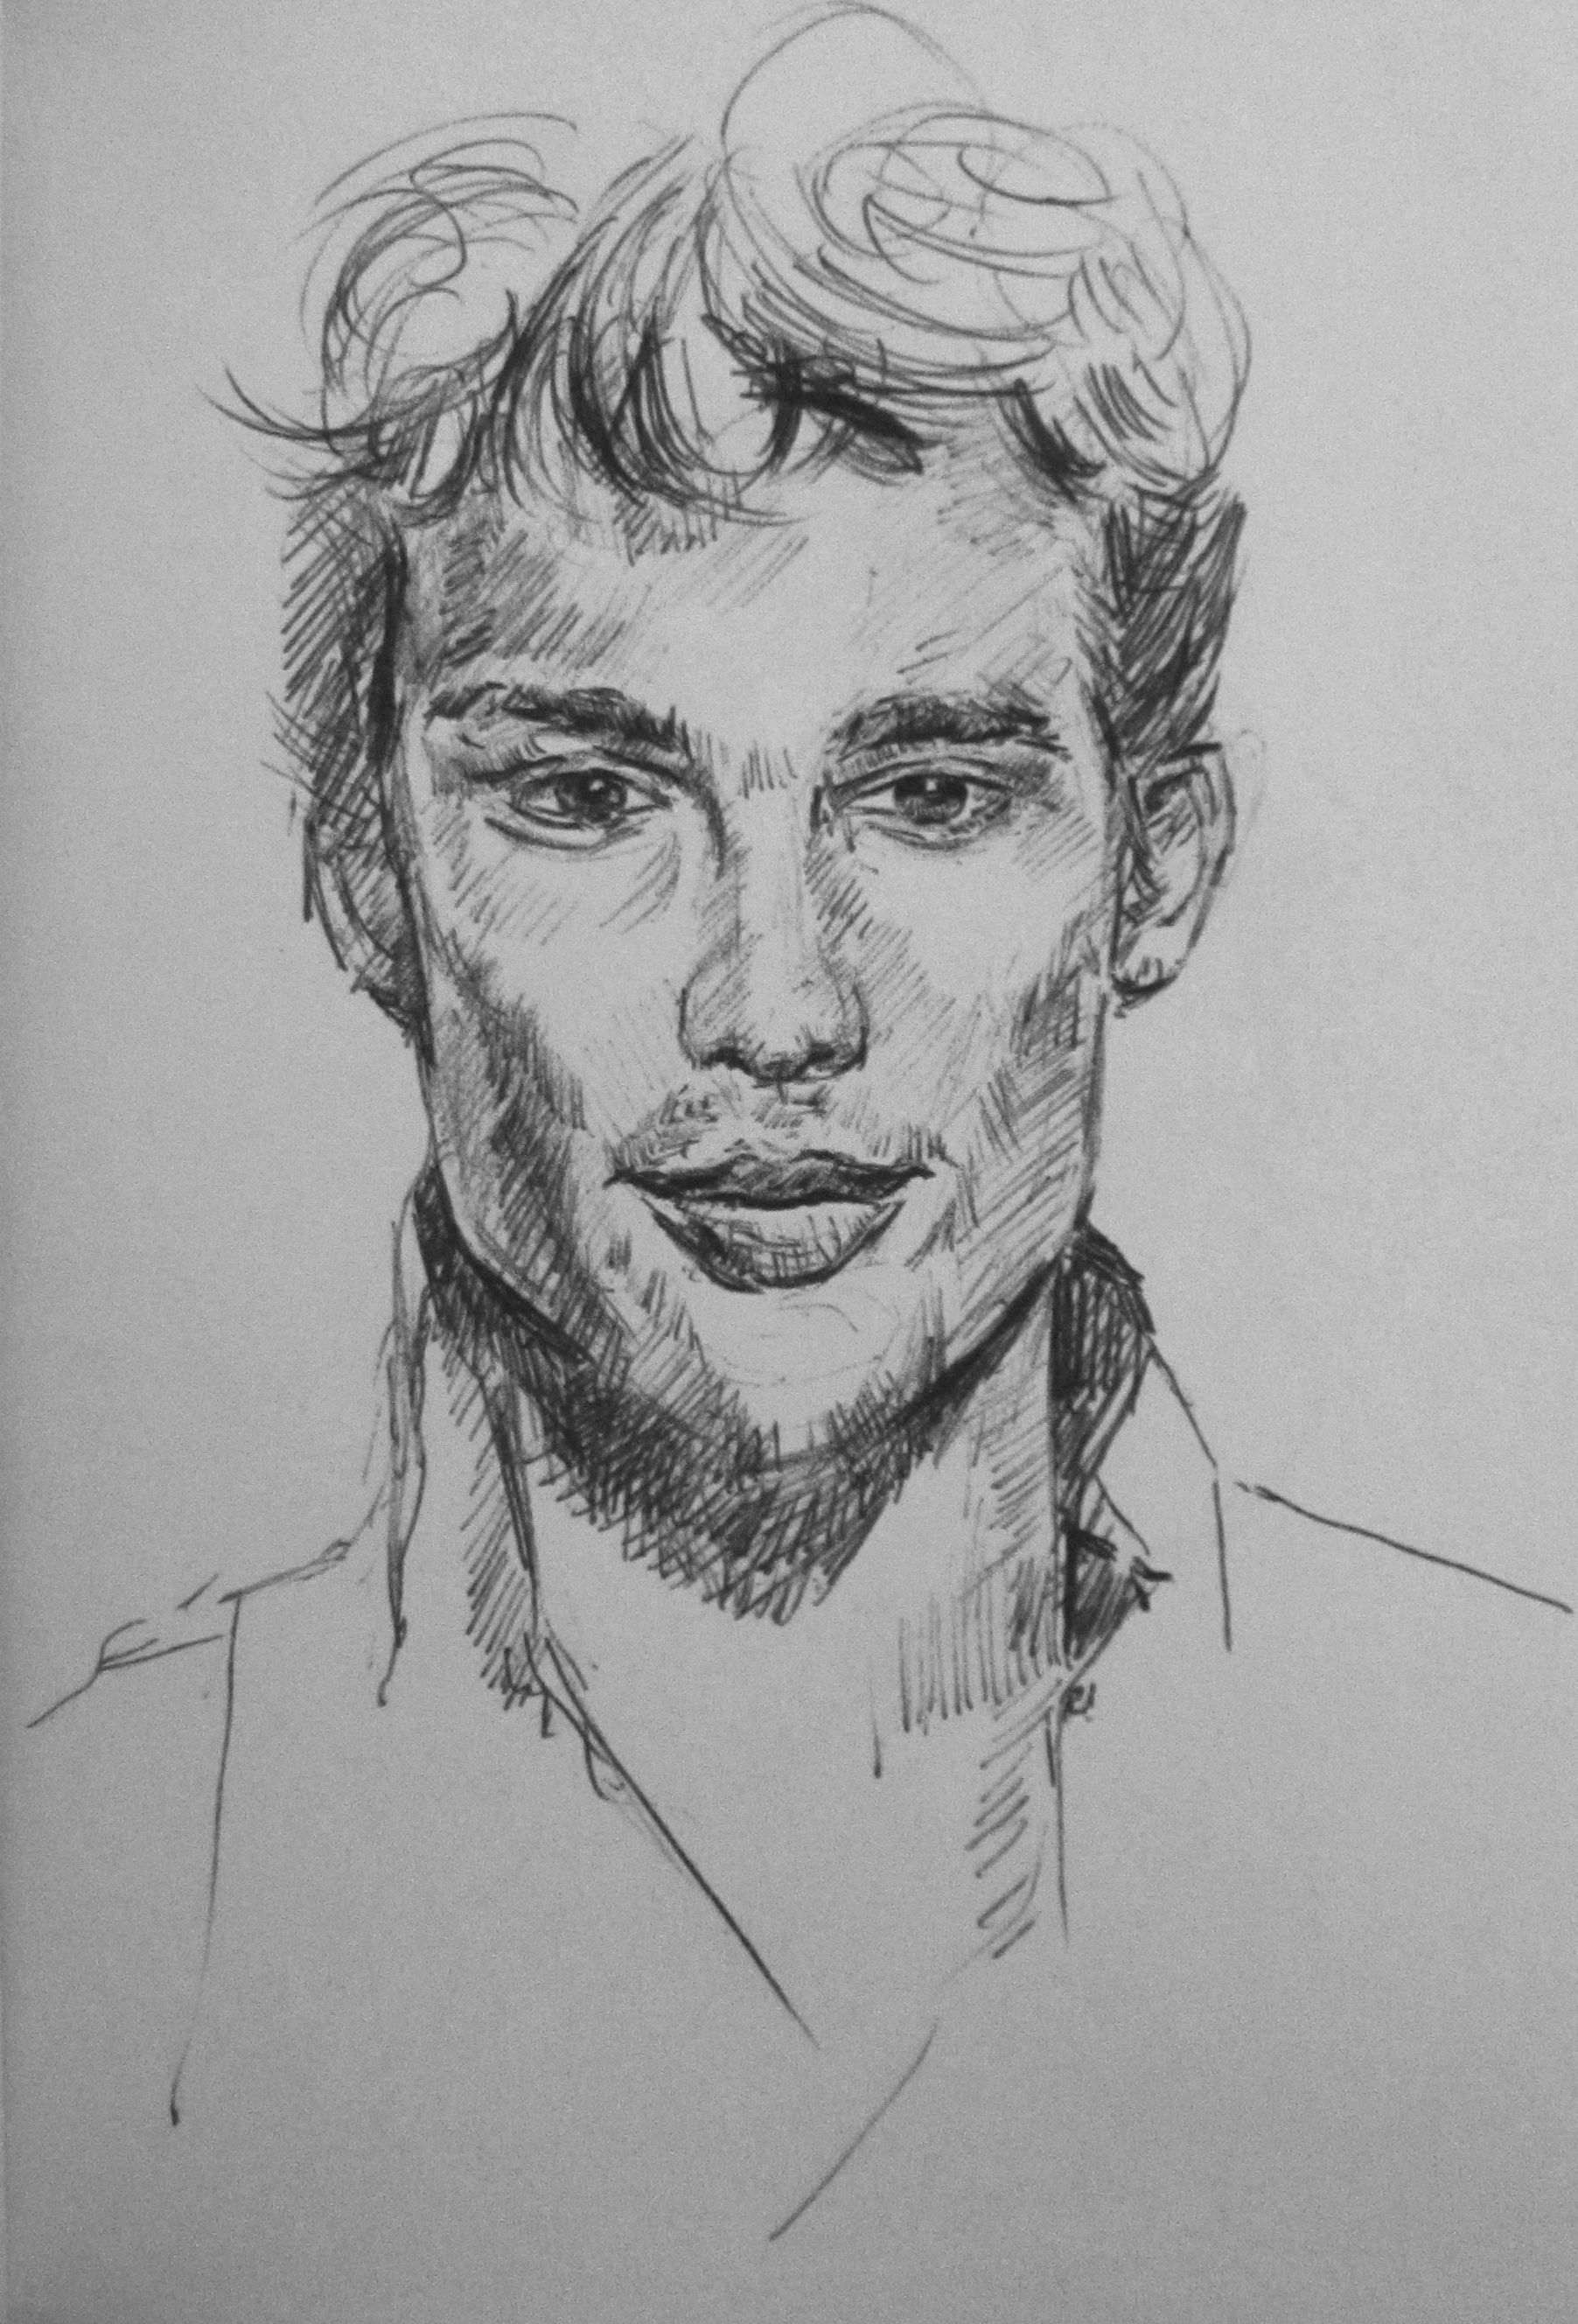 A Man Picture To Draw Pencil Sketch